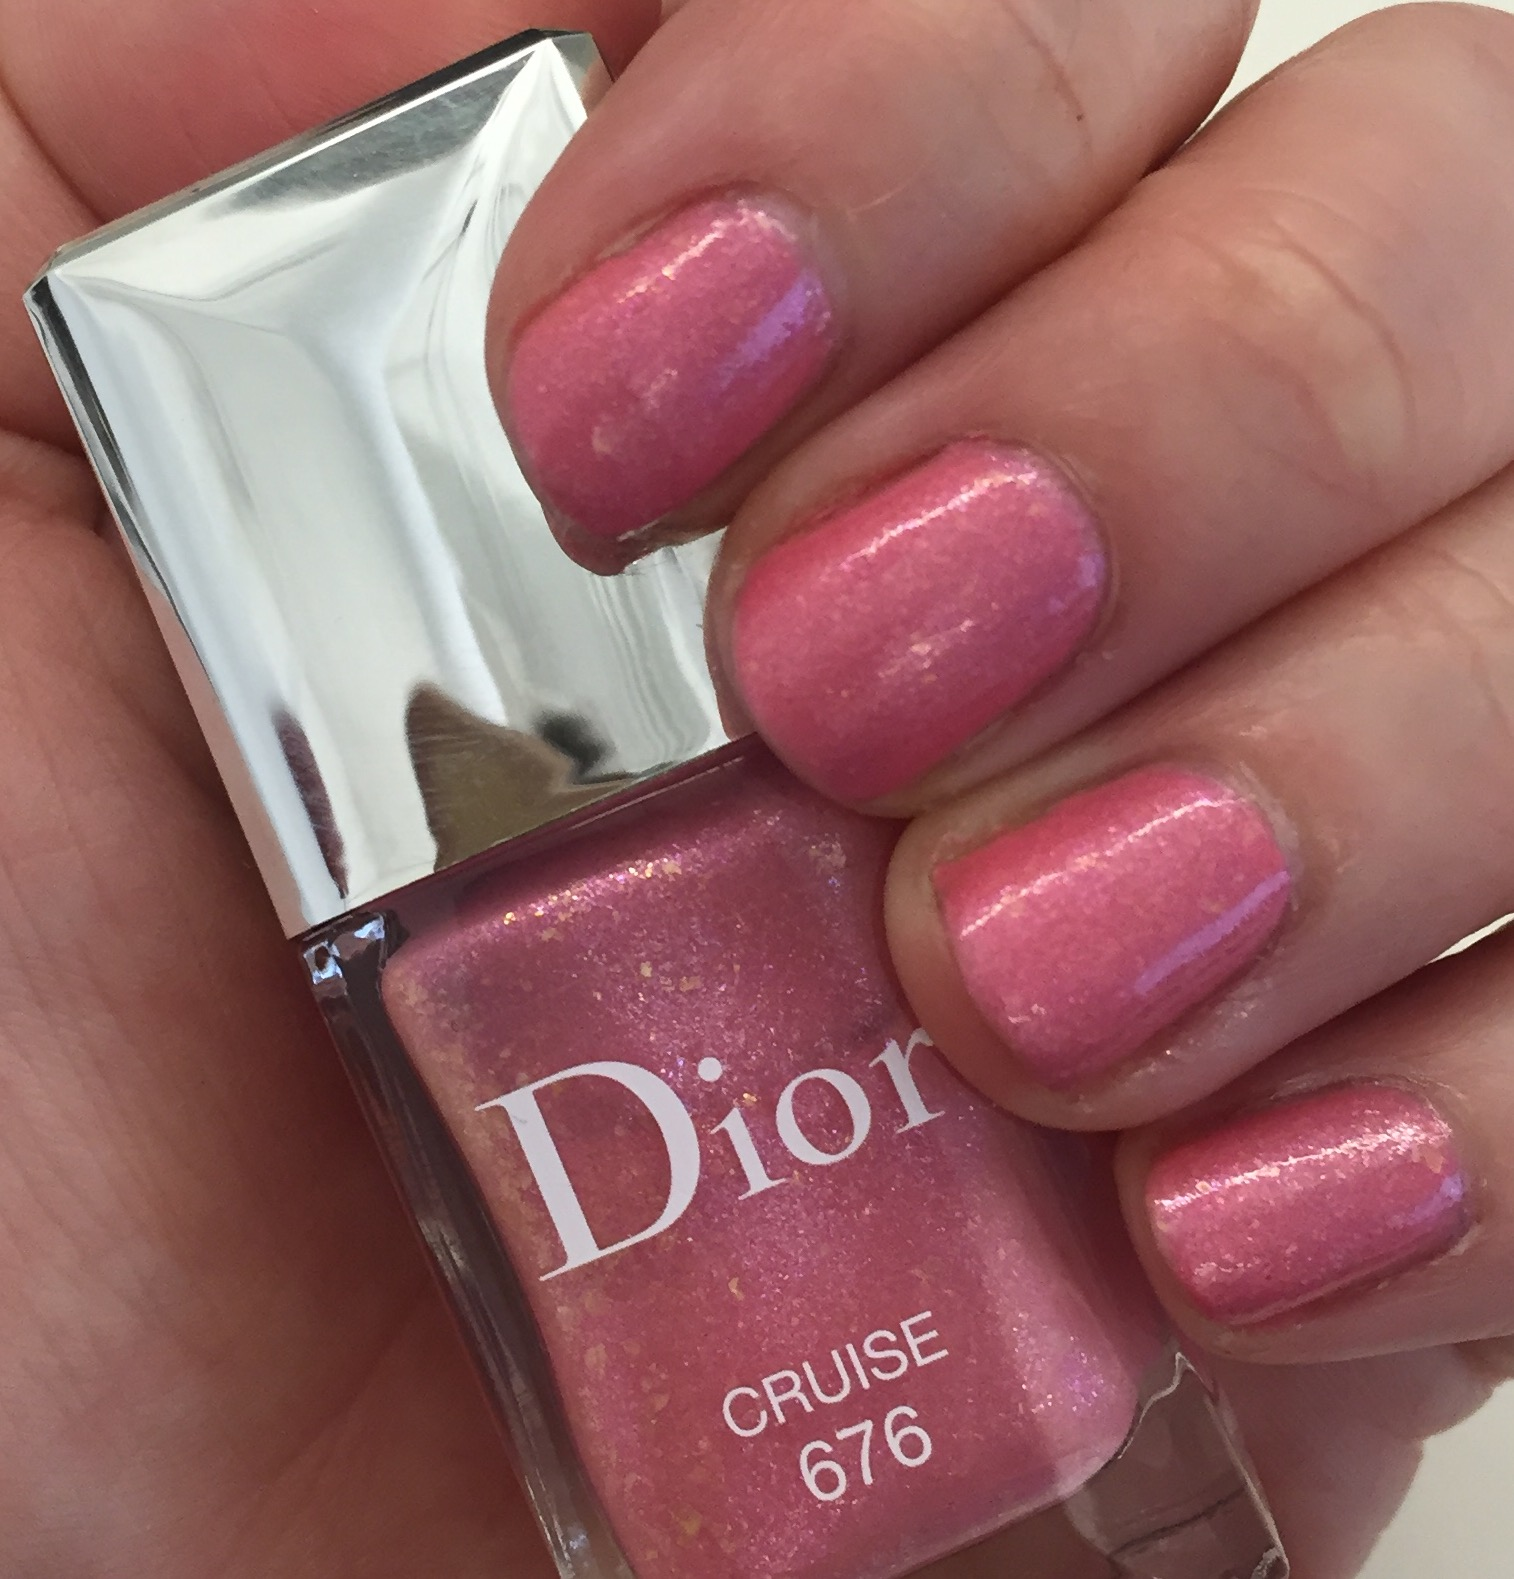 The Beauty of Life: On Wednesdays We Wear Pink: Dior Cruise 676 Nail ...